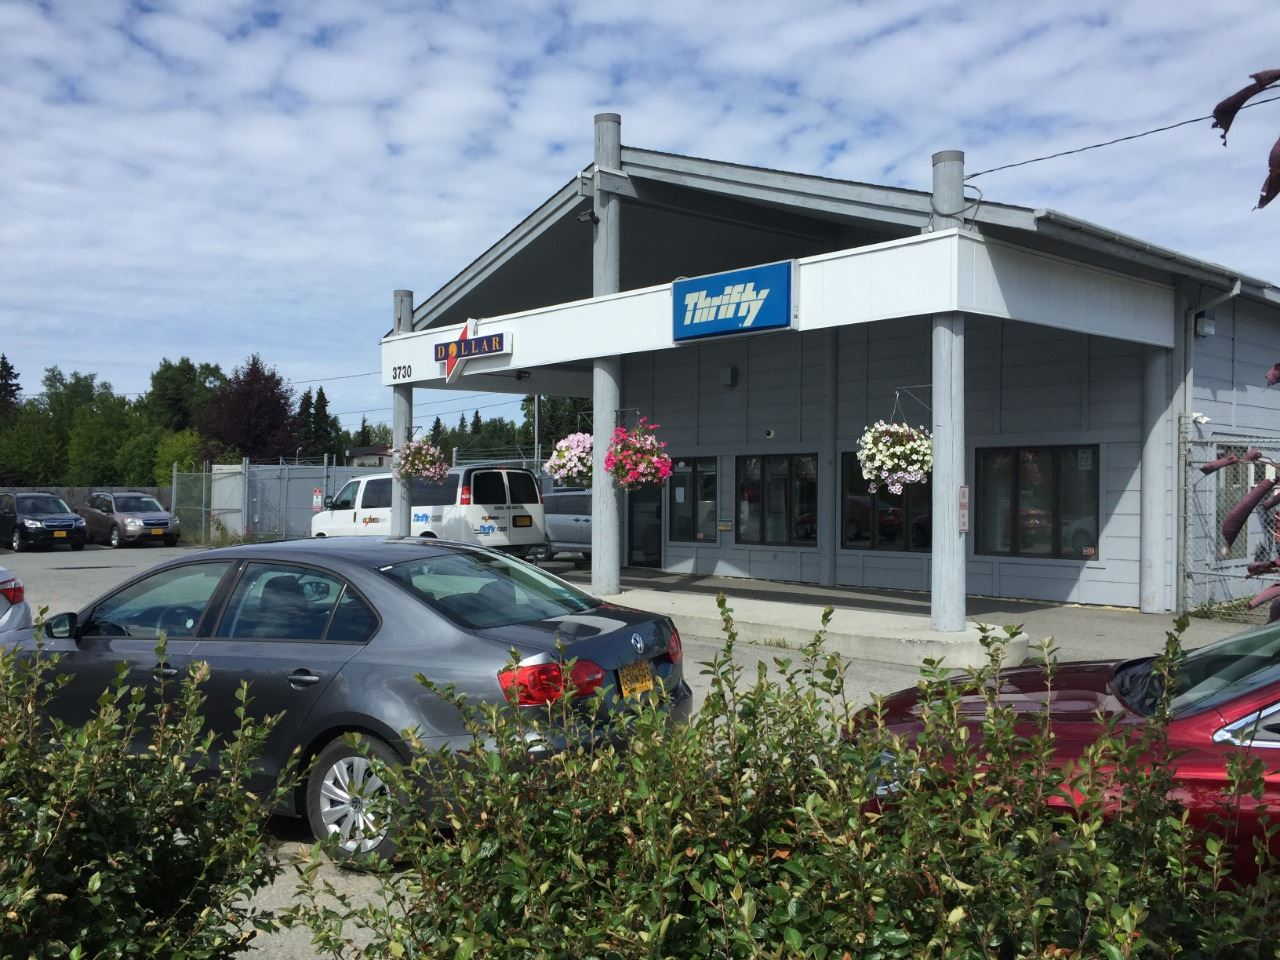 Thrifty Car Sales Alaska